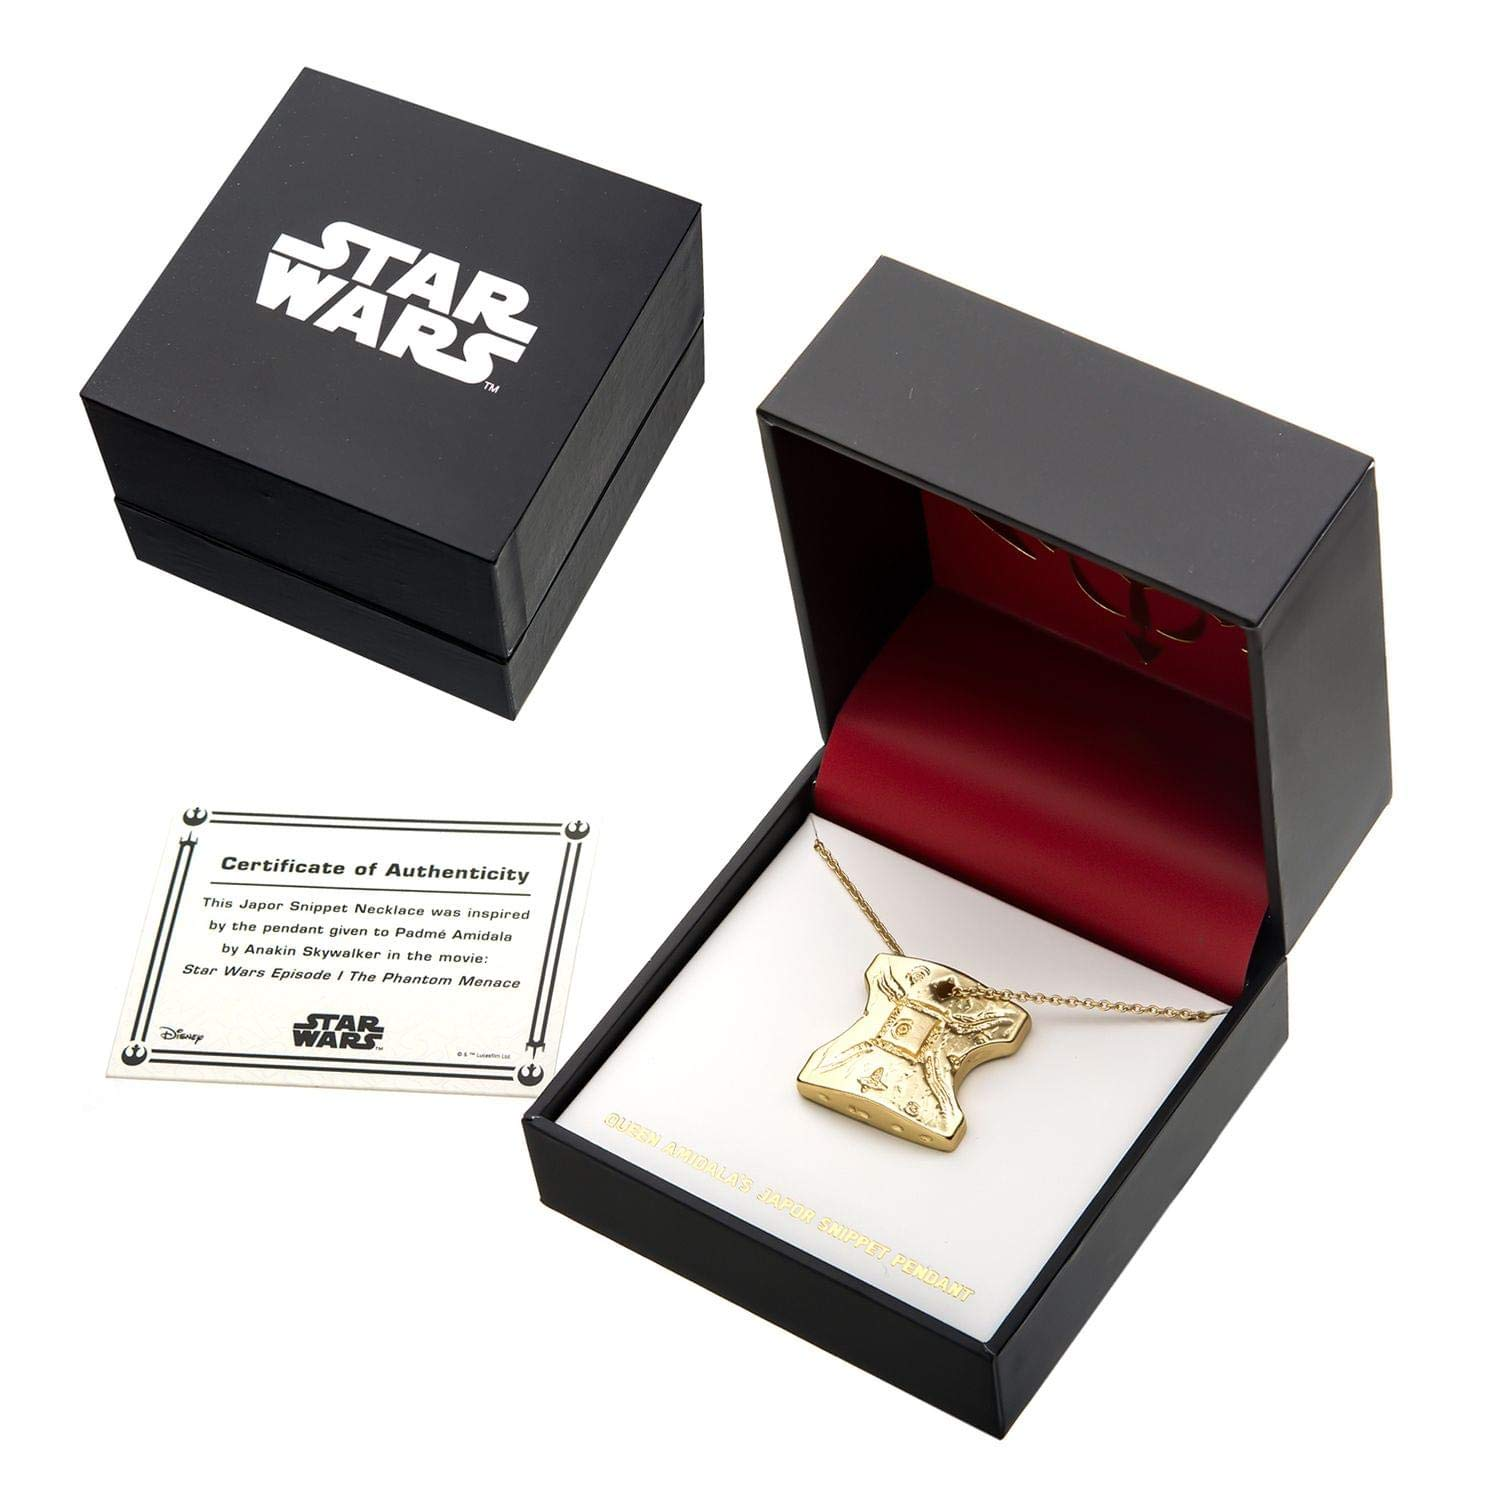 Body Vibe x Star Wars Padme' Amidala Japor Snippet Replica Necklace on Amazon